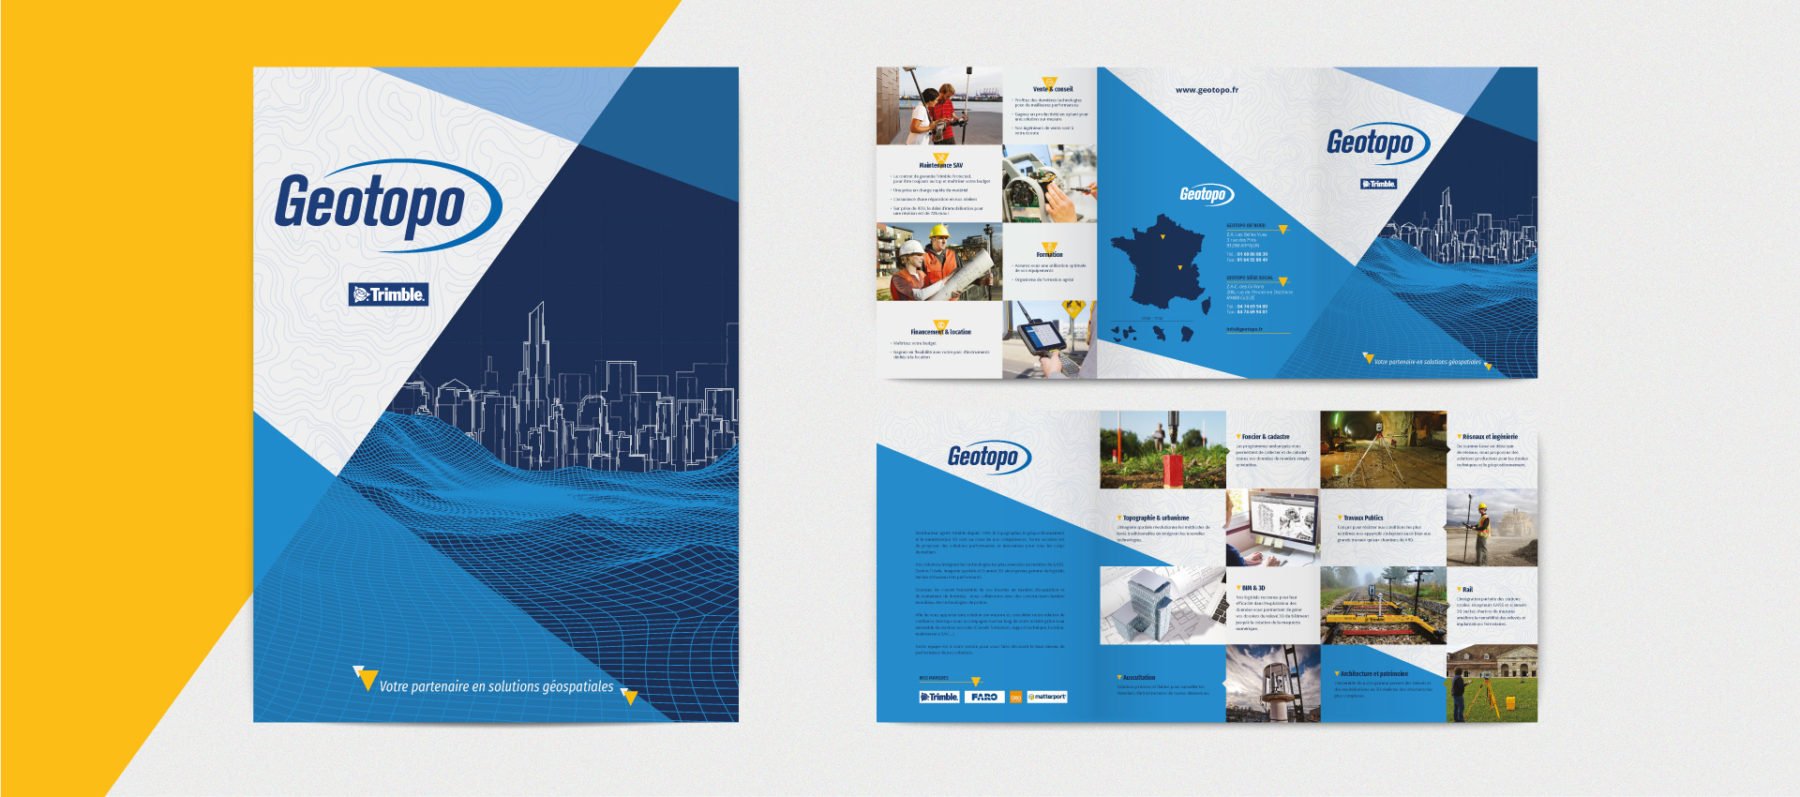 MADMINT designed brochure trifold for Geotopo